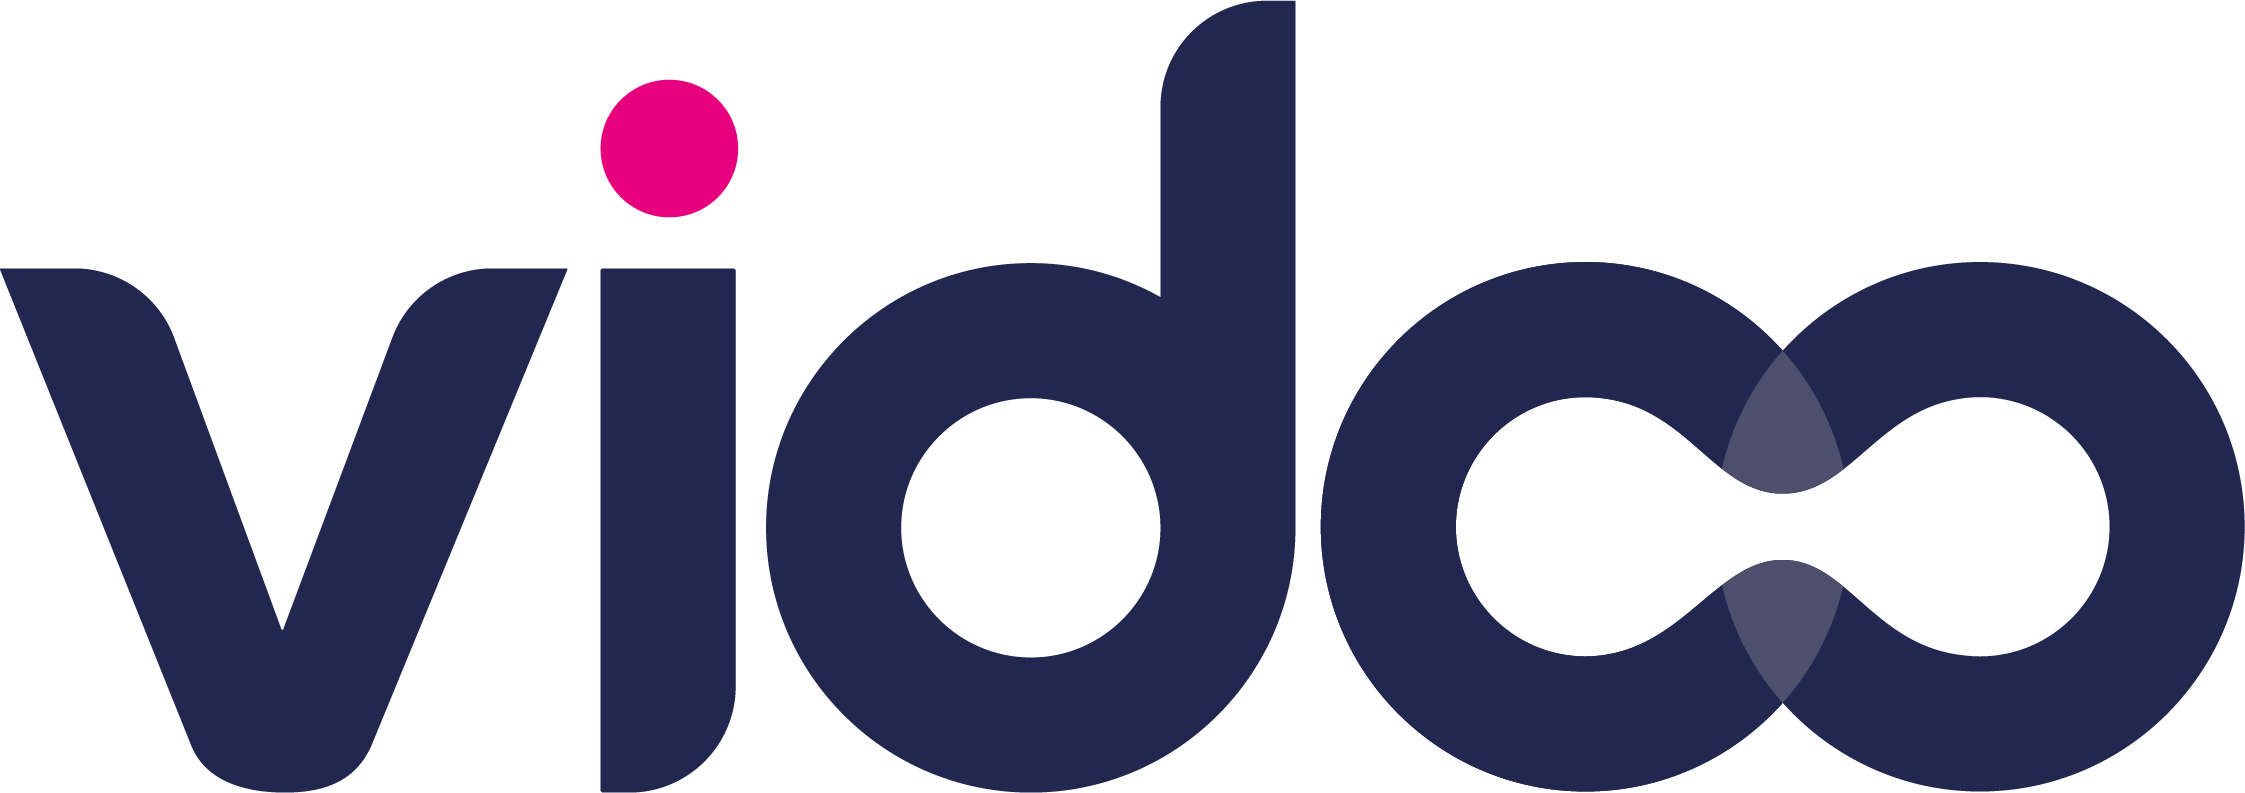 Vidoo | Film, TV & Video Production | Suffolk | Essex | Norfolk | Cambridgeshire | East Anglia